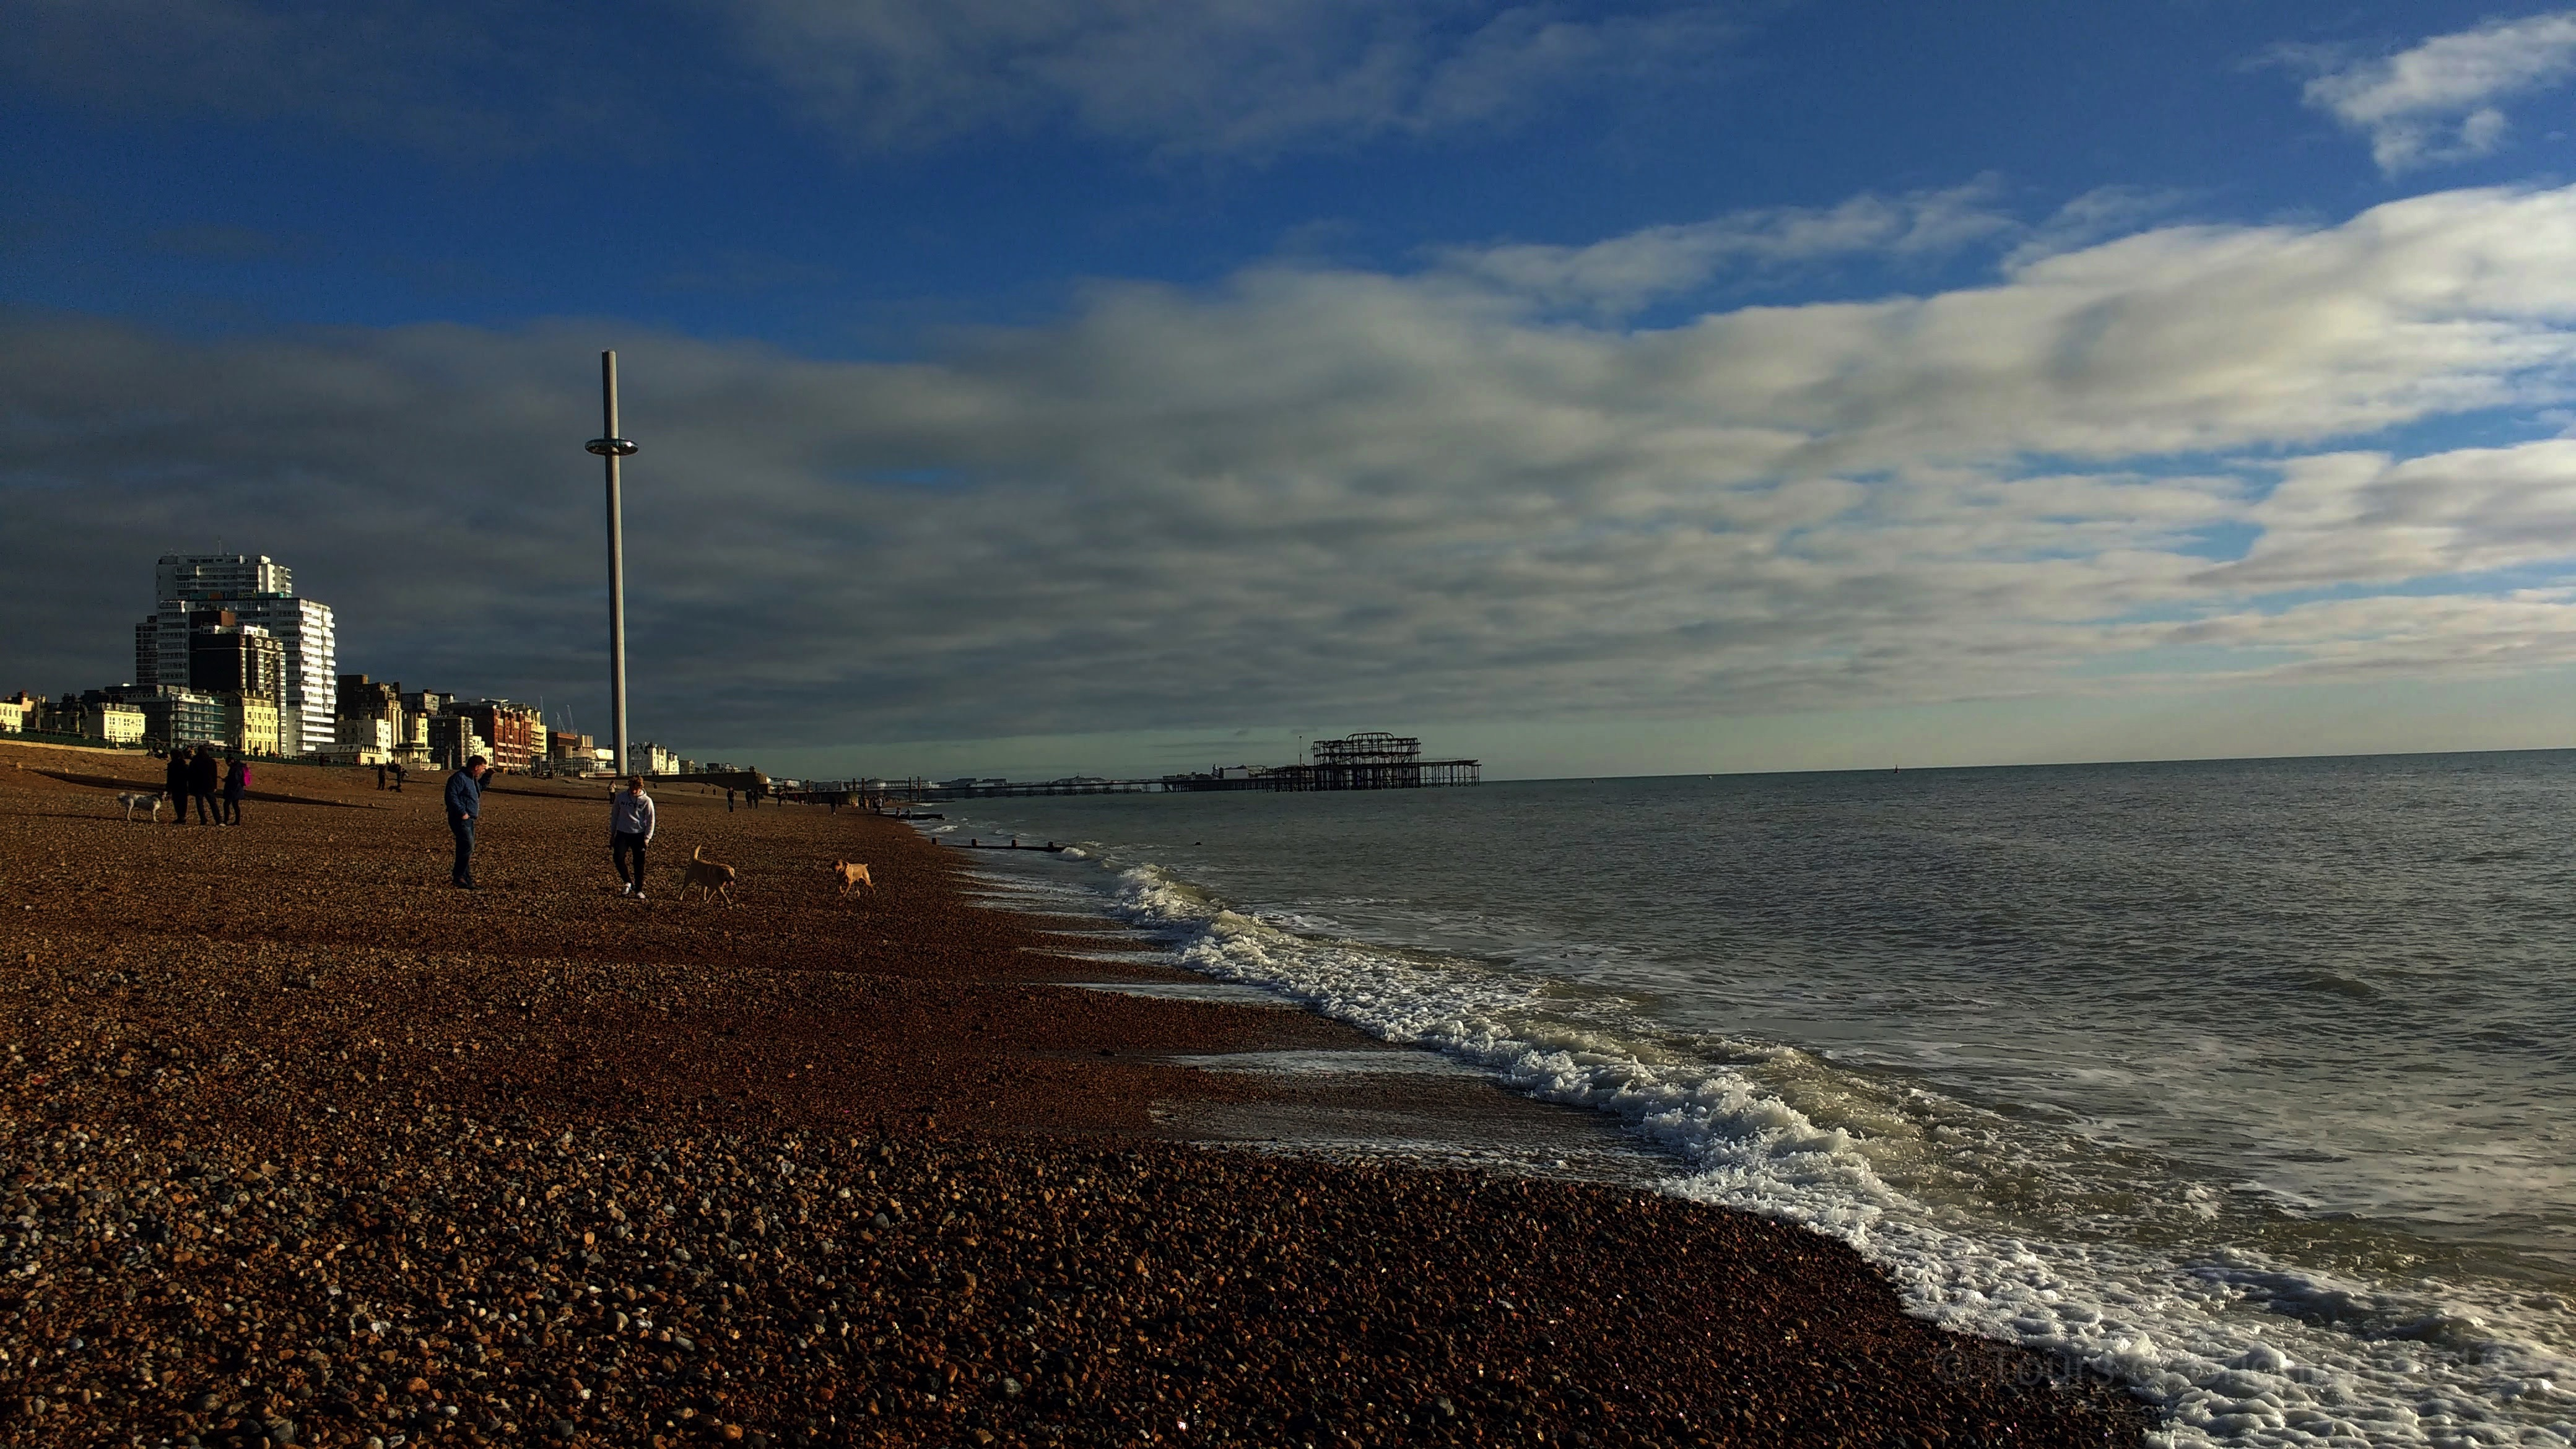 Brighton by the sea with view of the I360